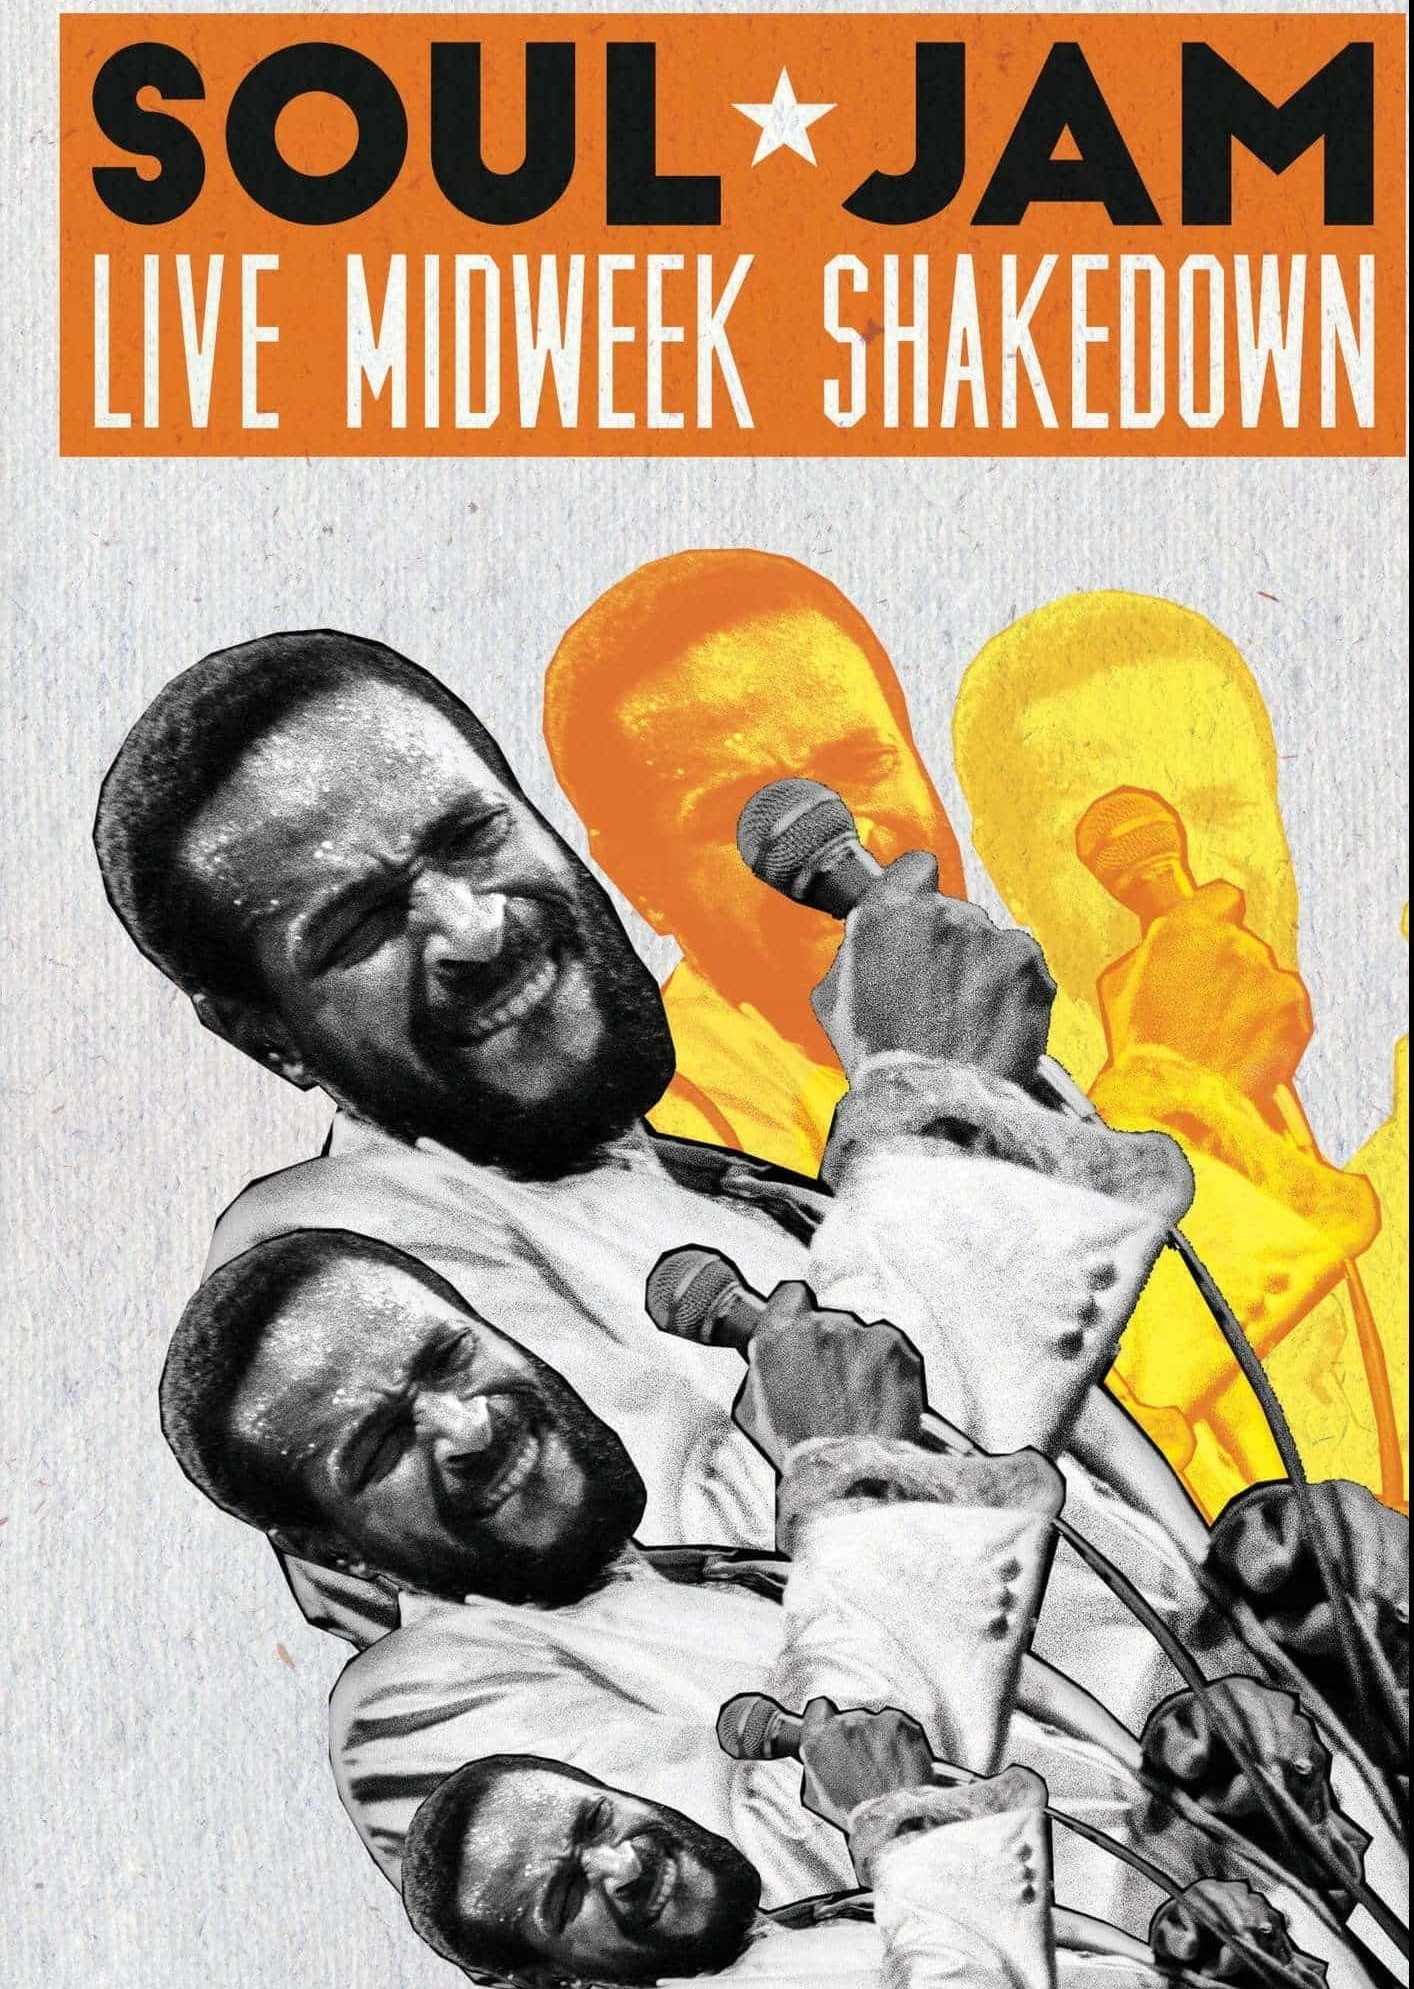 Soul Jam MidWeek Shakedown at Barrio Shoreditch